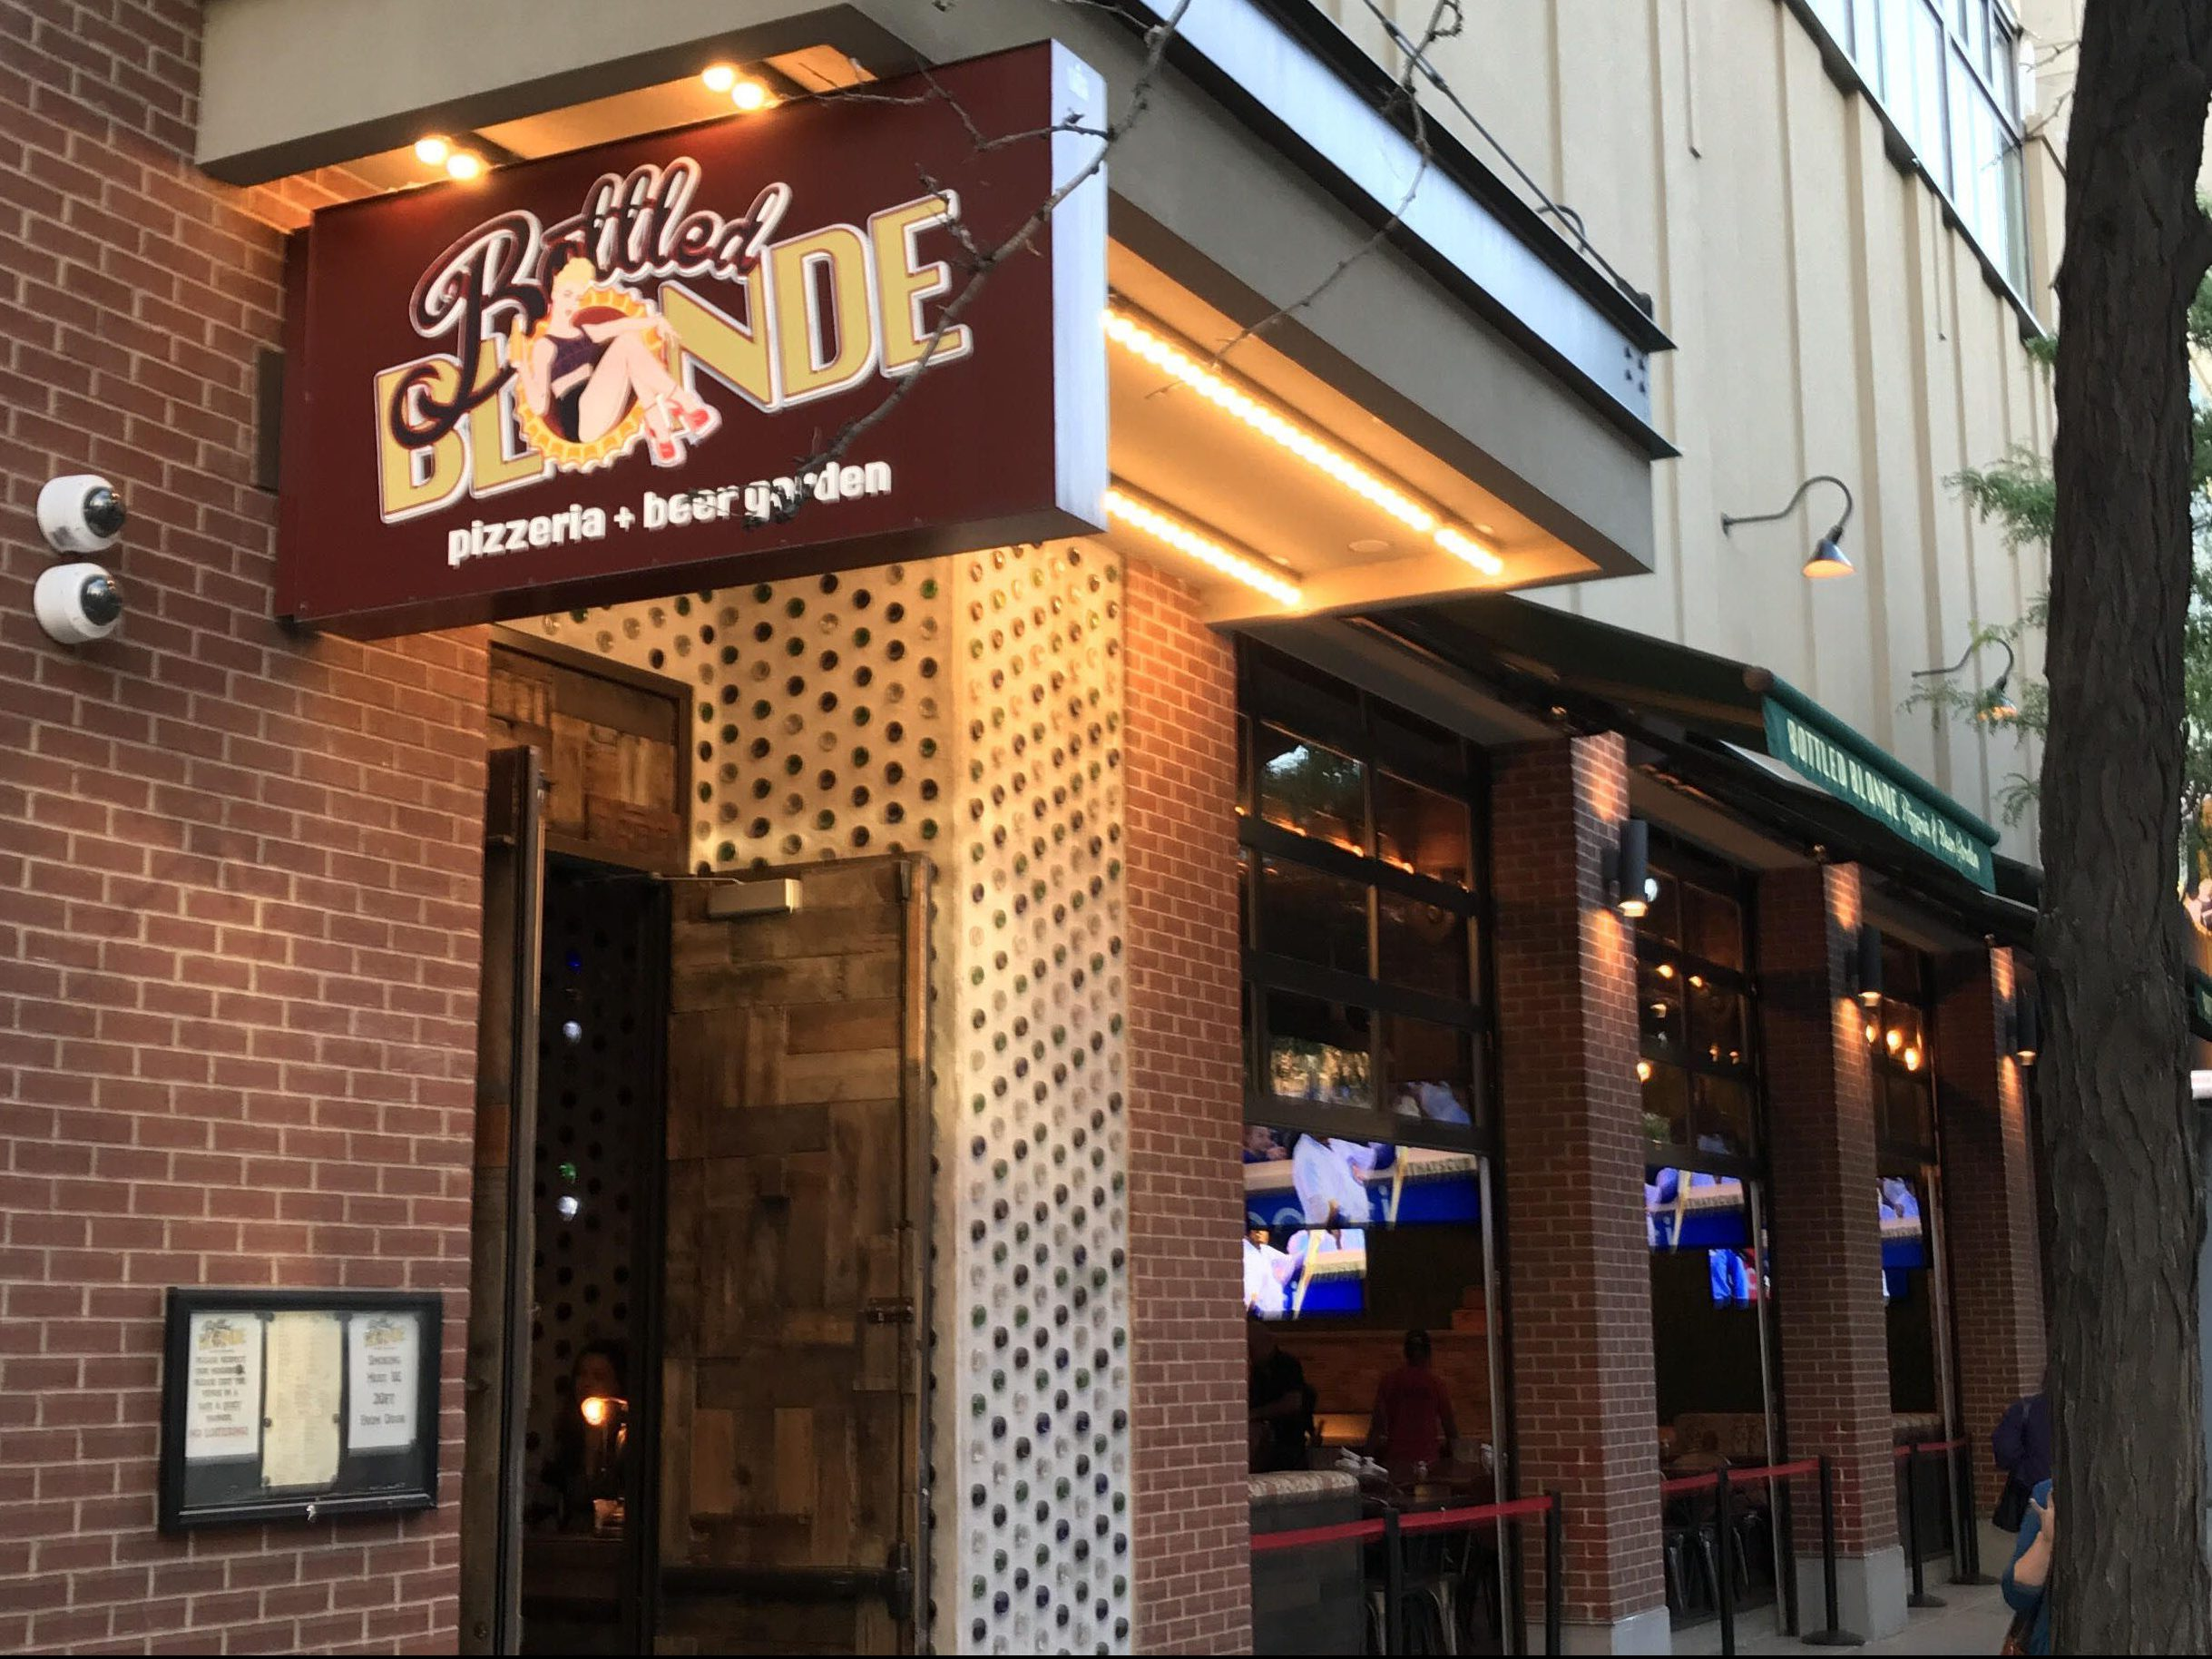 Bottled Blonde, 504. N. Wells St., faces license-revocation proceedings.